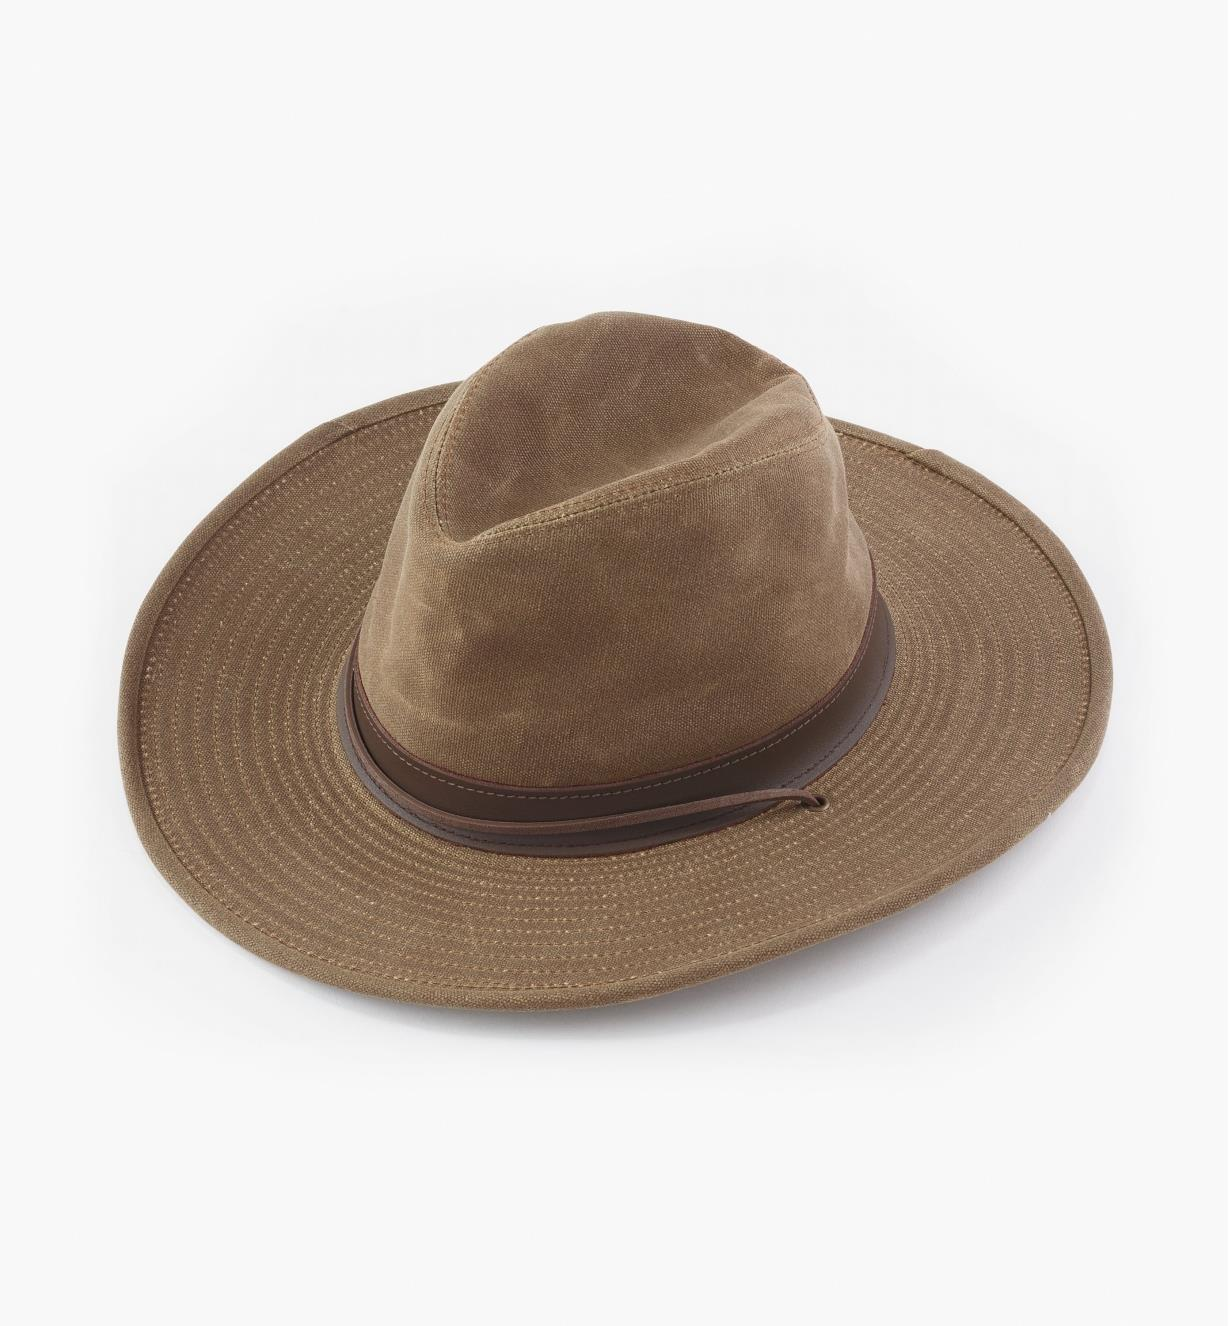 HL515 - Waxed Canvas Hat, Medium